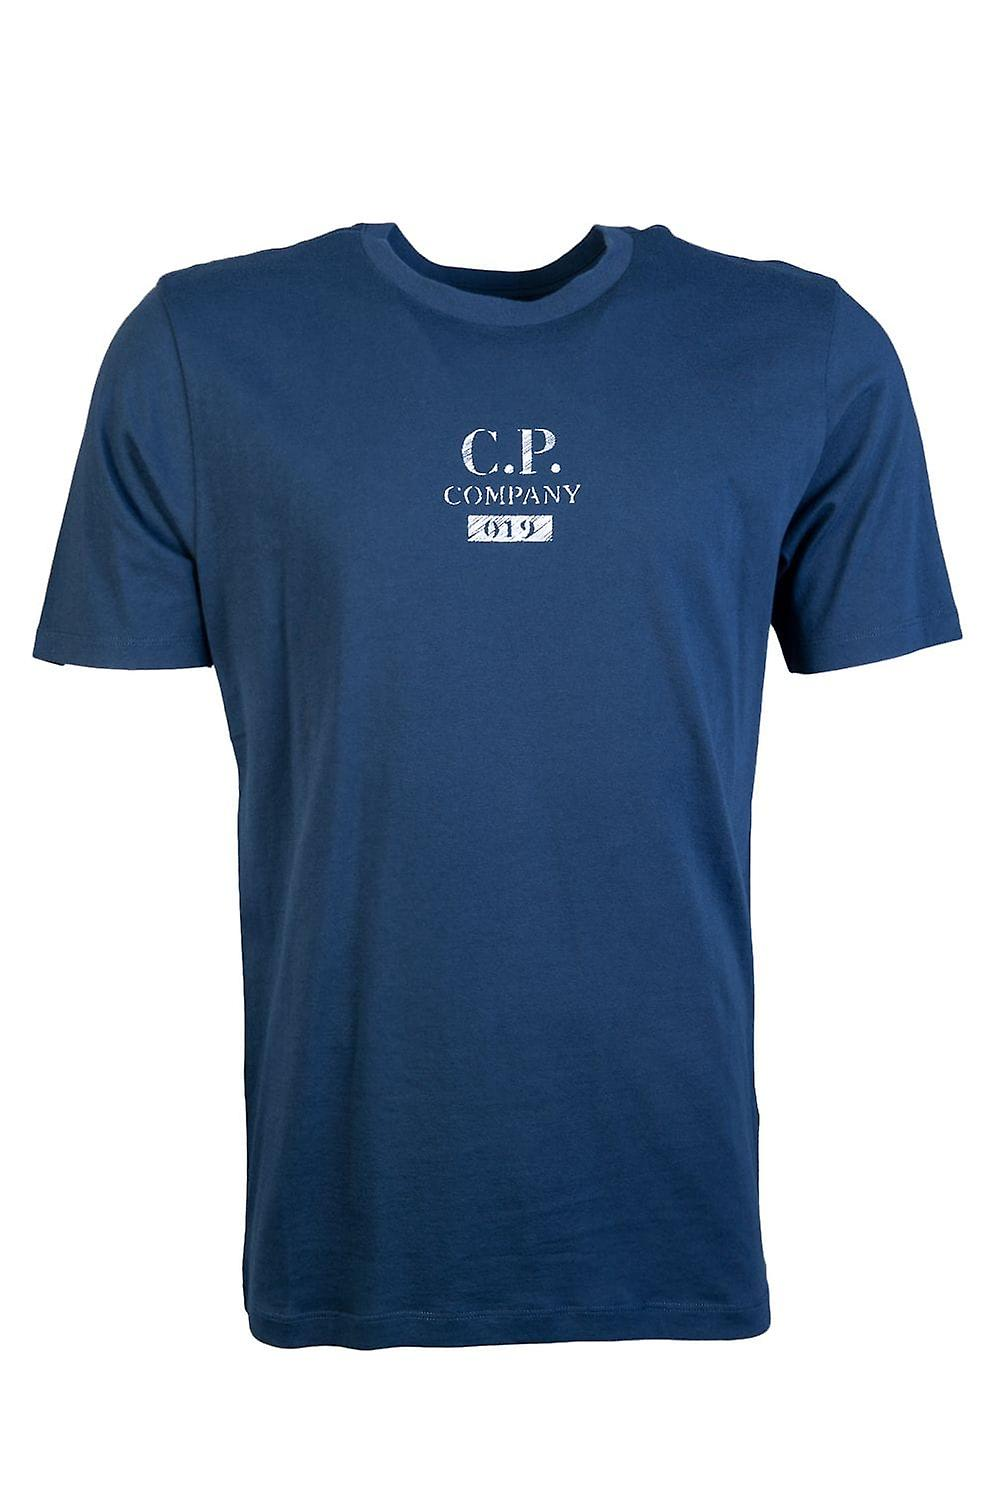 CP Company Round Neck T Shirt MTS155A 005100W